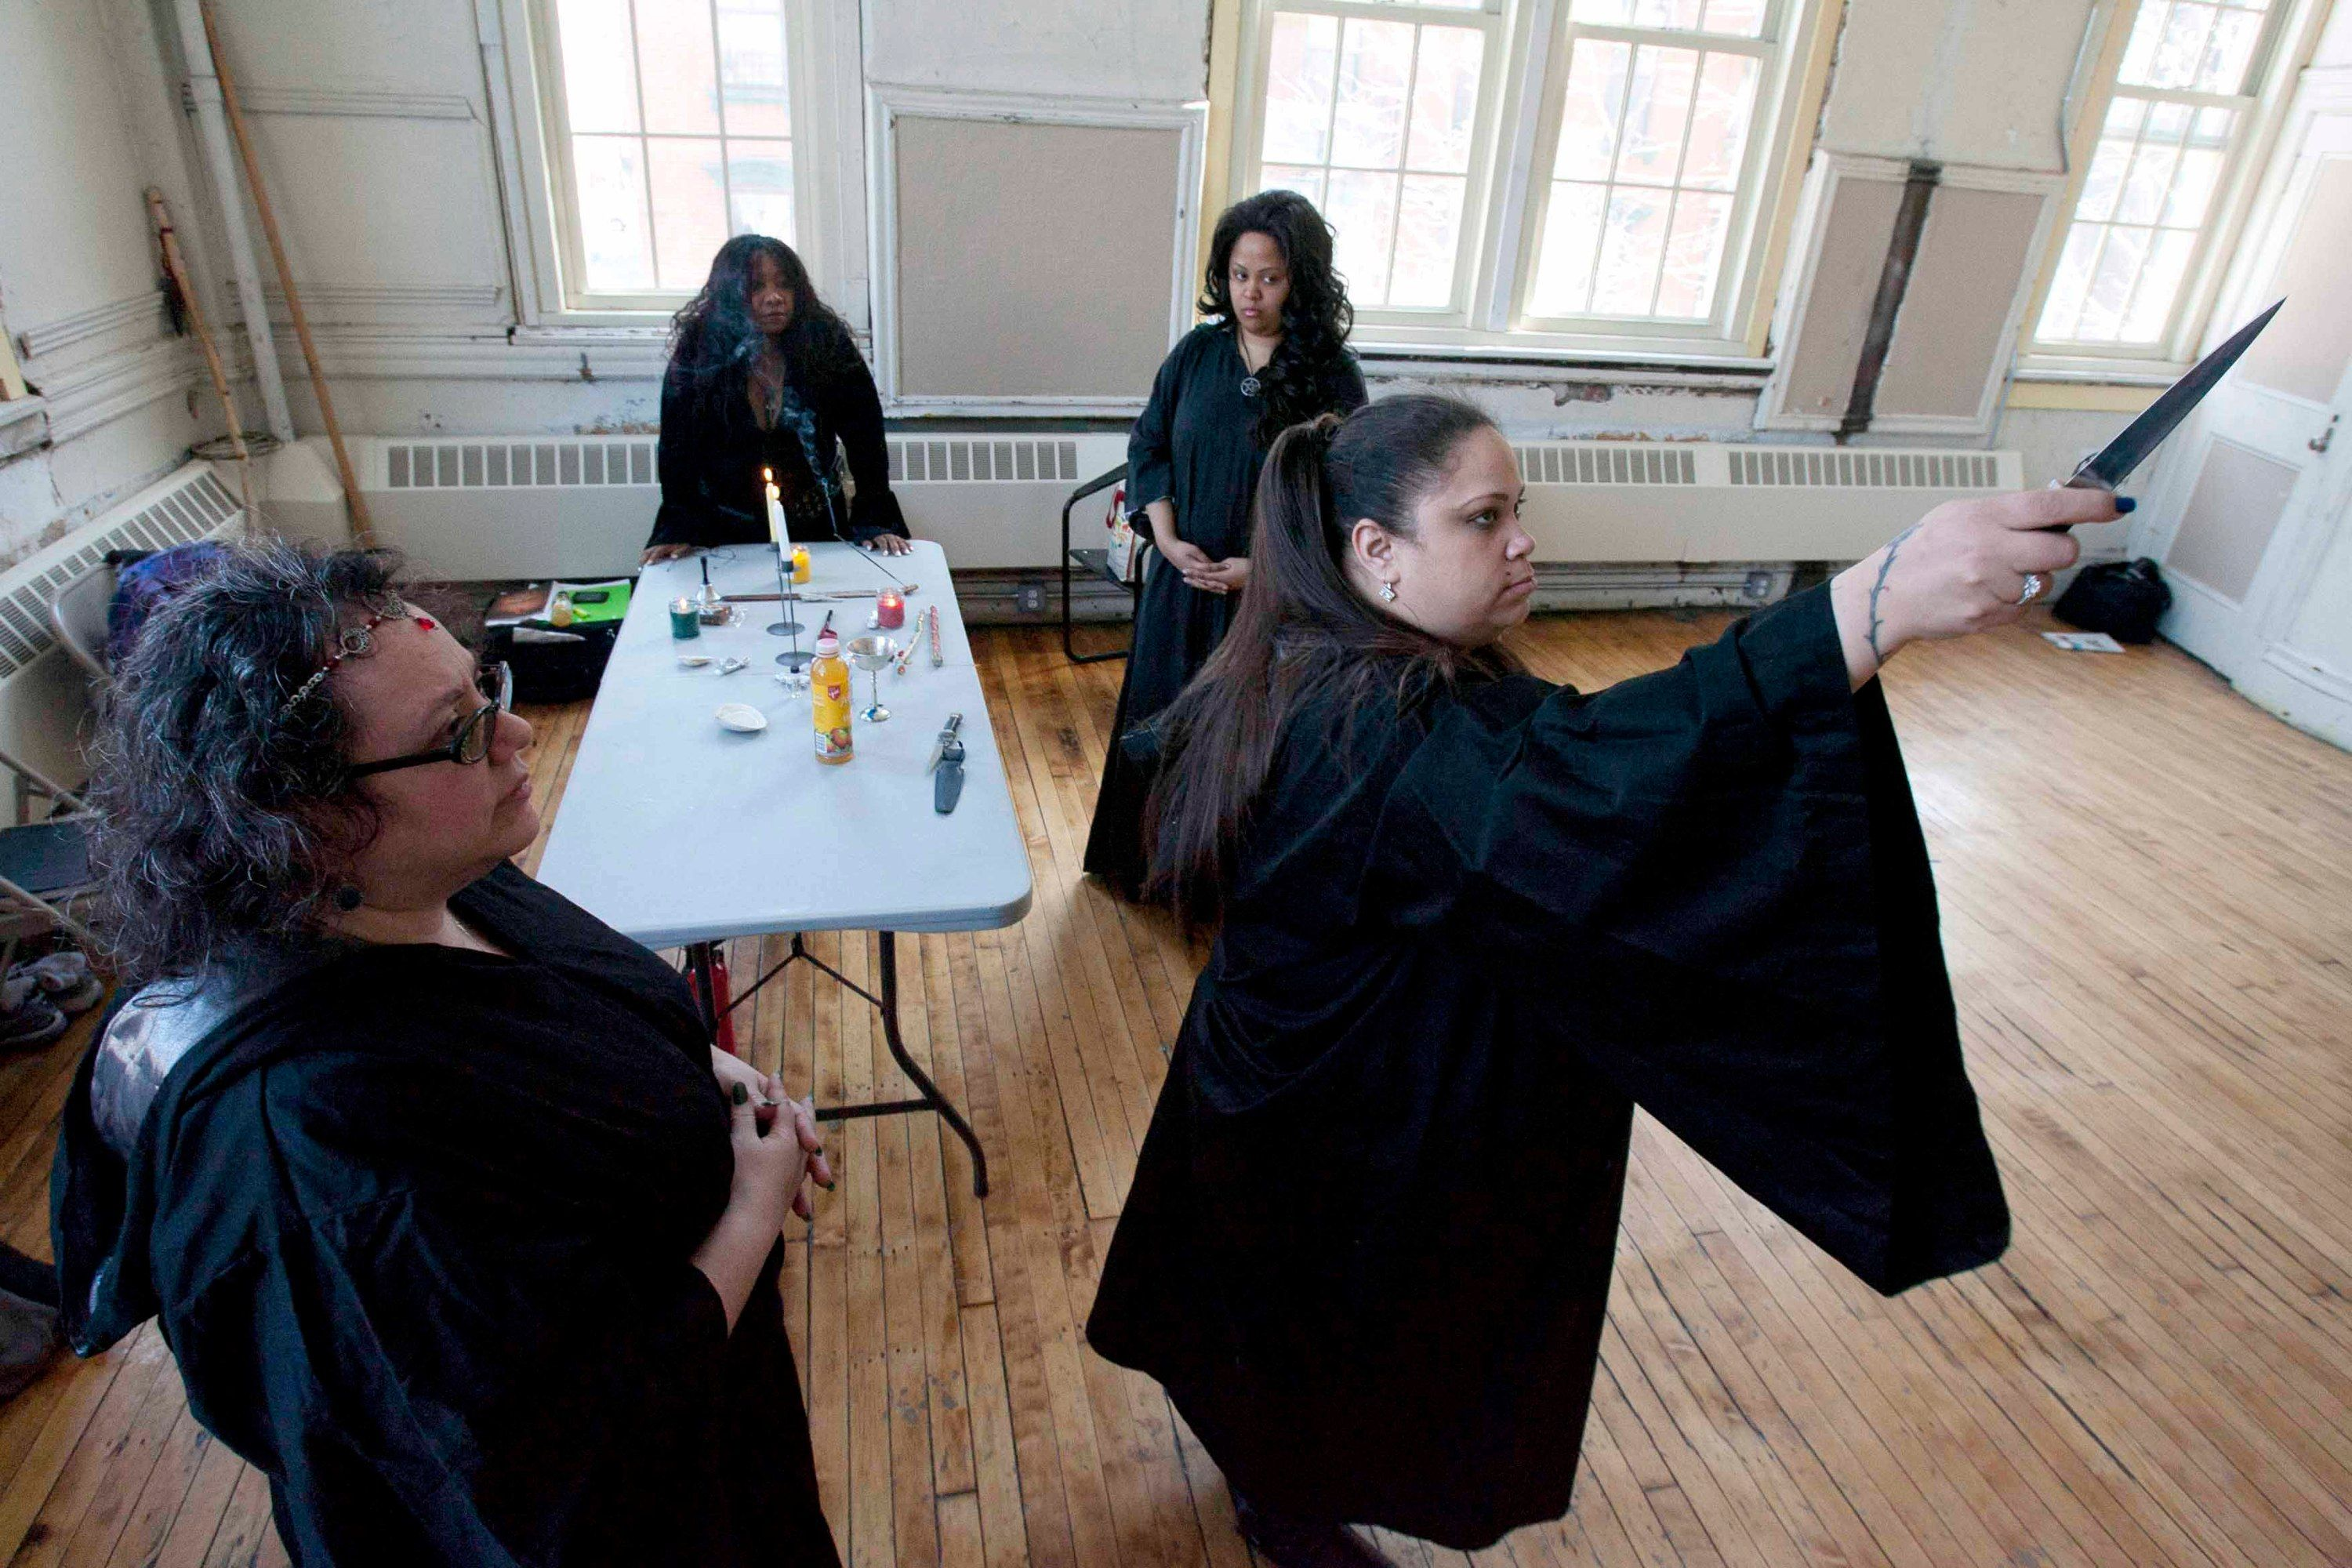 Lessons in modern witchcraft minus the broomsticks with